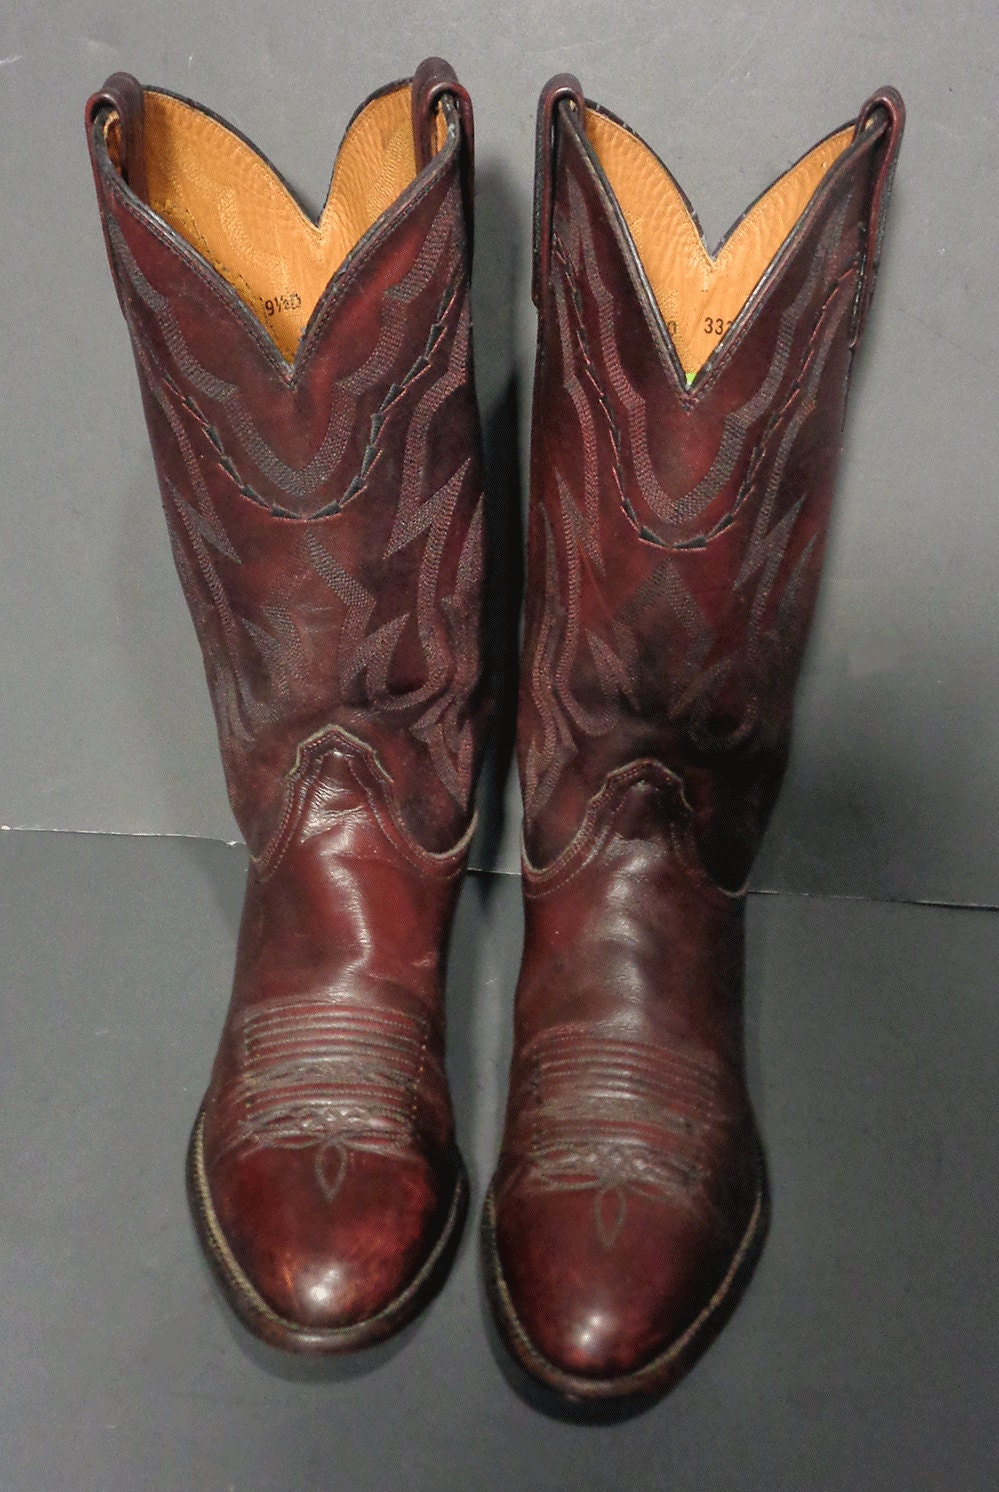 Lucchese 2000 Cherry Burgundy Leather Cowboy Western Boots